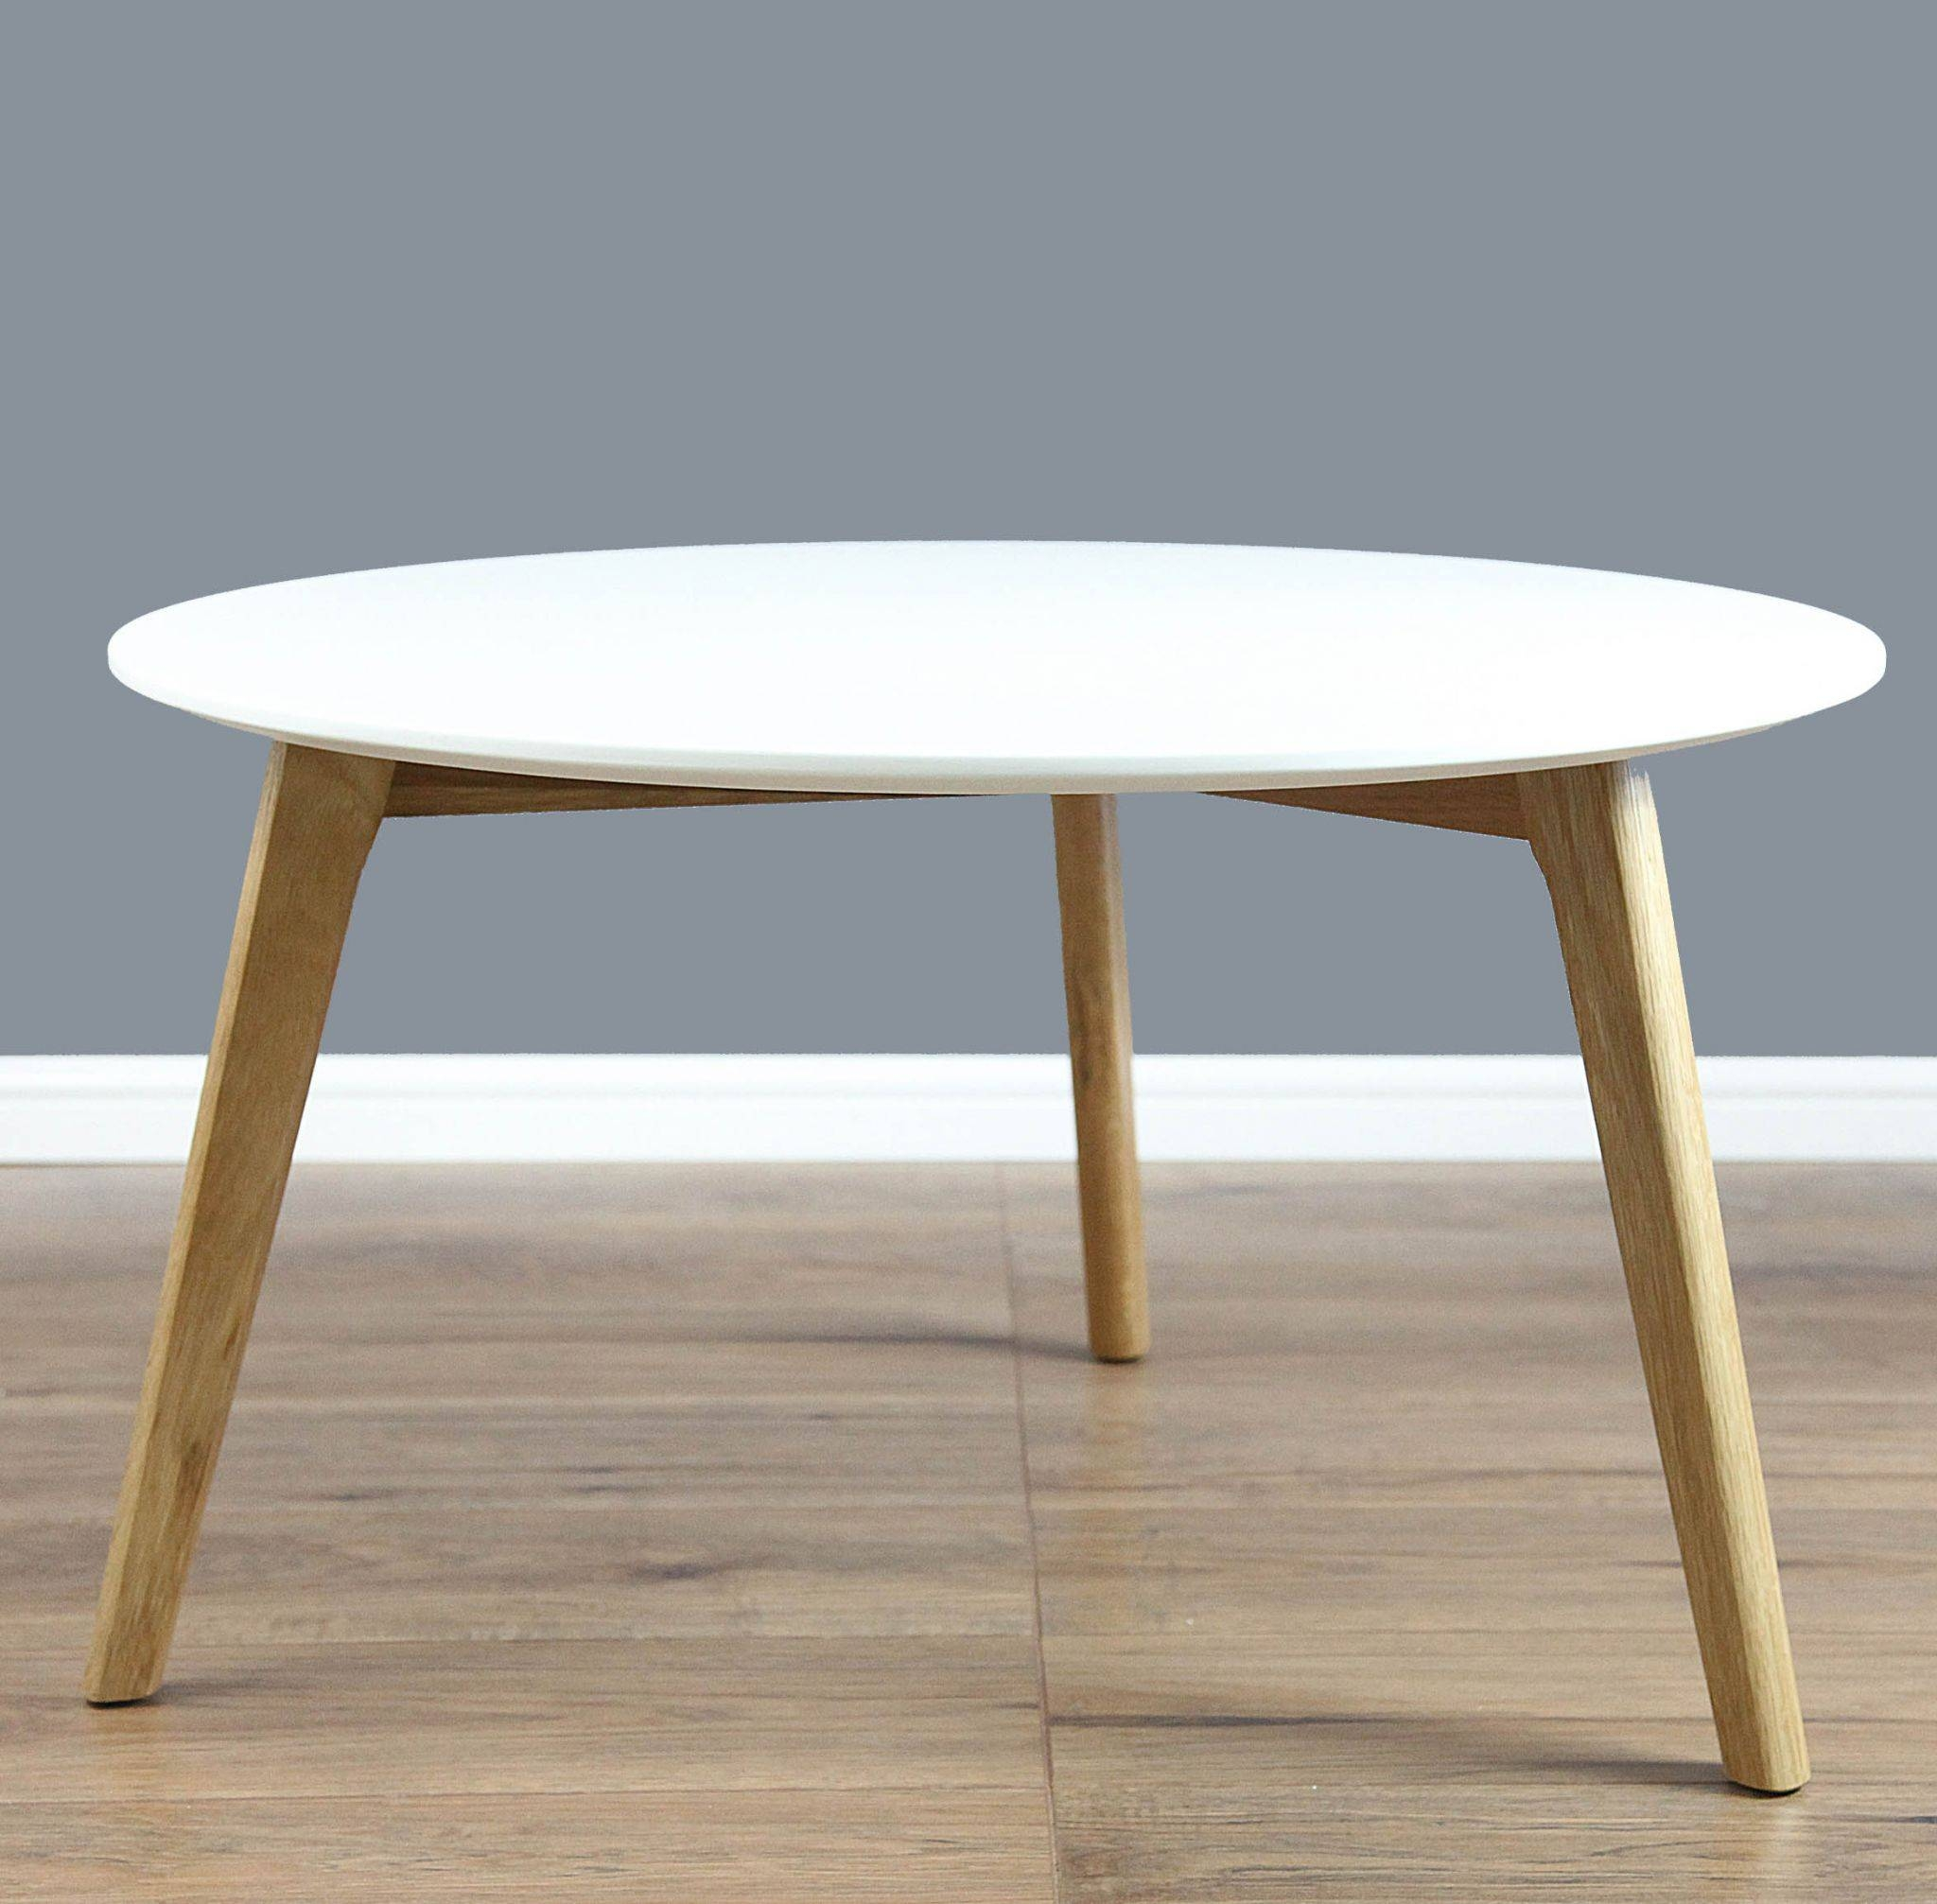 Mmilo Spio Round Coffee Table Side Table With Solid Oak Legs In with White and Oak Coffee Tables (Image 20 of 30)